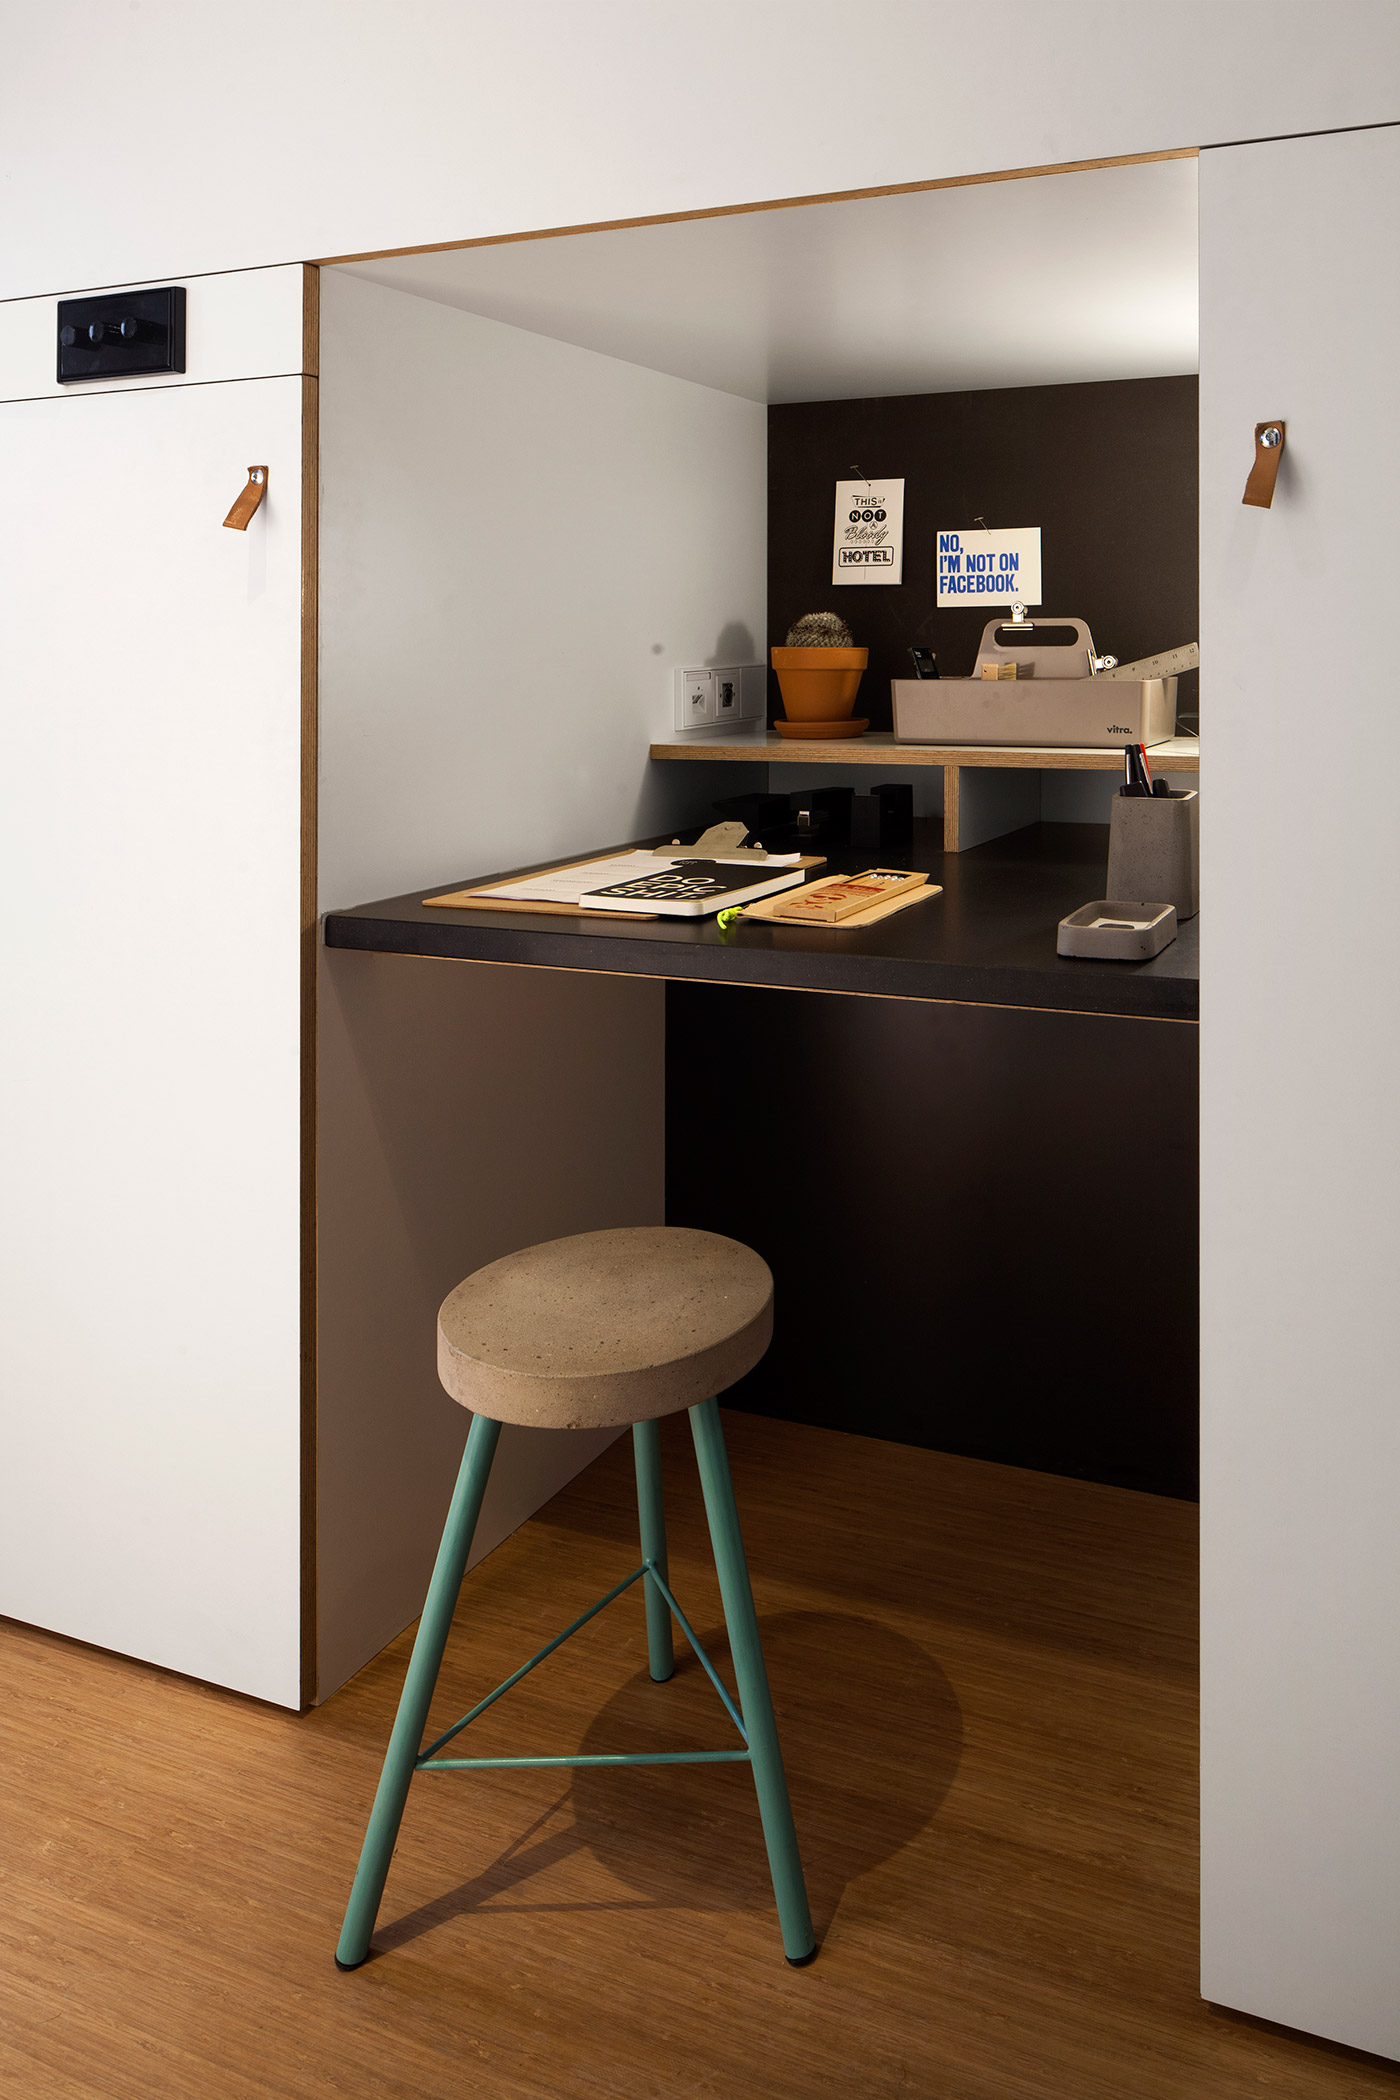 Bureau Professionnel Cocooning 4 Awesome Small Studio Apartments With Lofted Beds